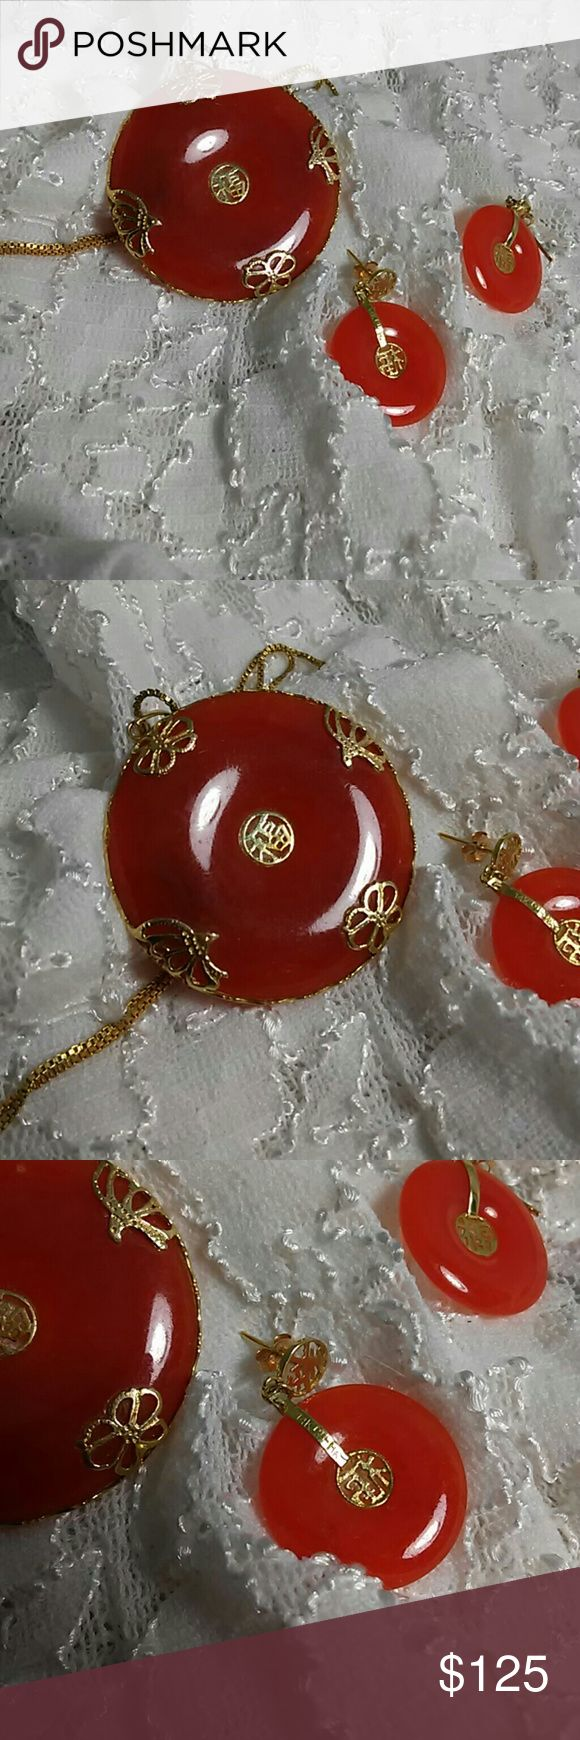 "Necklace set 14k pendant (1.5"") and chain 18""  Rare red jade Pi with Chinese symbol for Good Luck in center of Pi matching 14k and jade earrings. QVC Jewelry Necklaces"